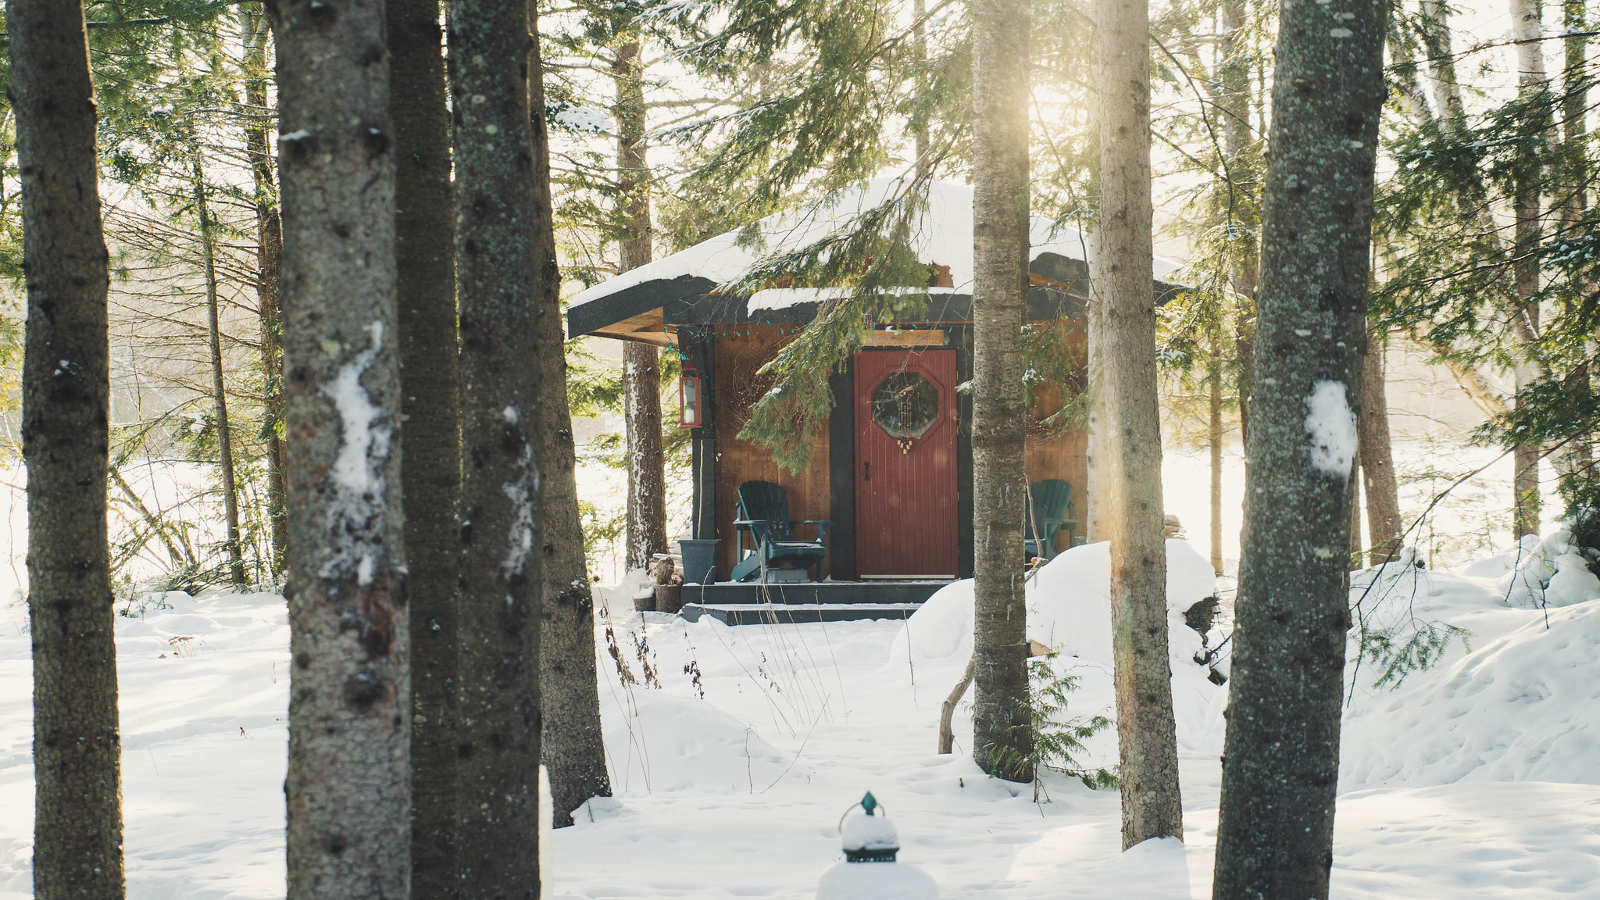 A winter sauna in the forest